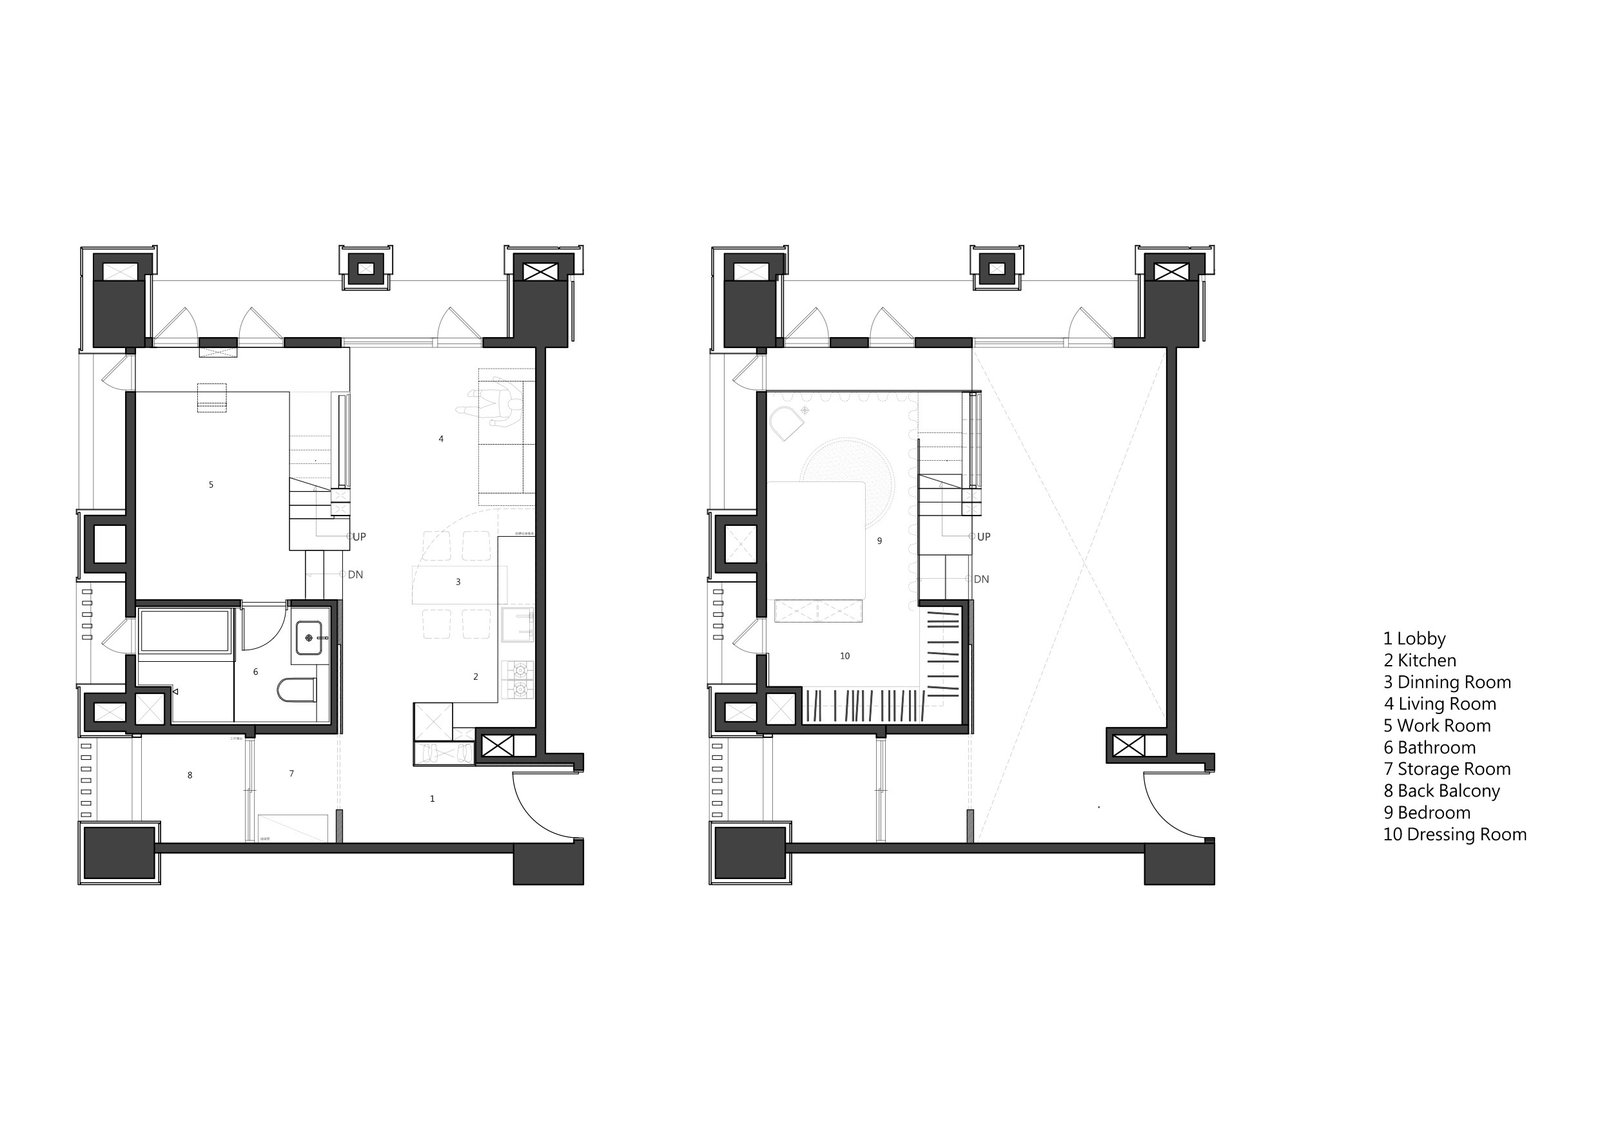 Apartment X floor plan.  Photo 12 of 12 in A Tiny Apartment Transforms Into a Stylish, Space-Saving Bachelor Pad For $84K